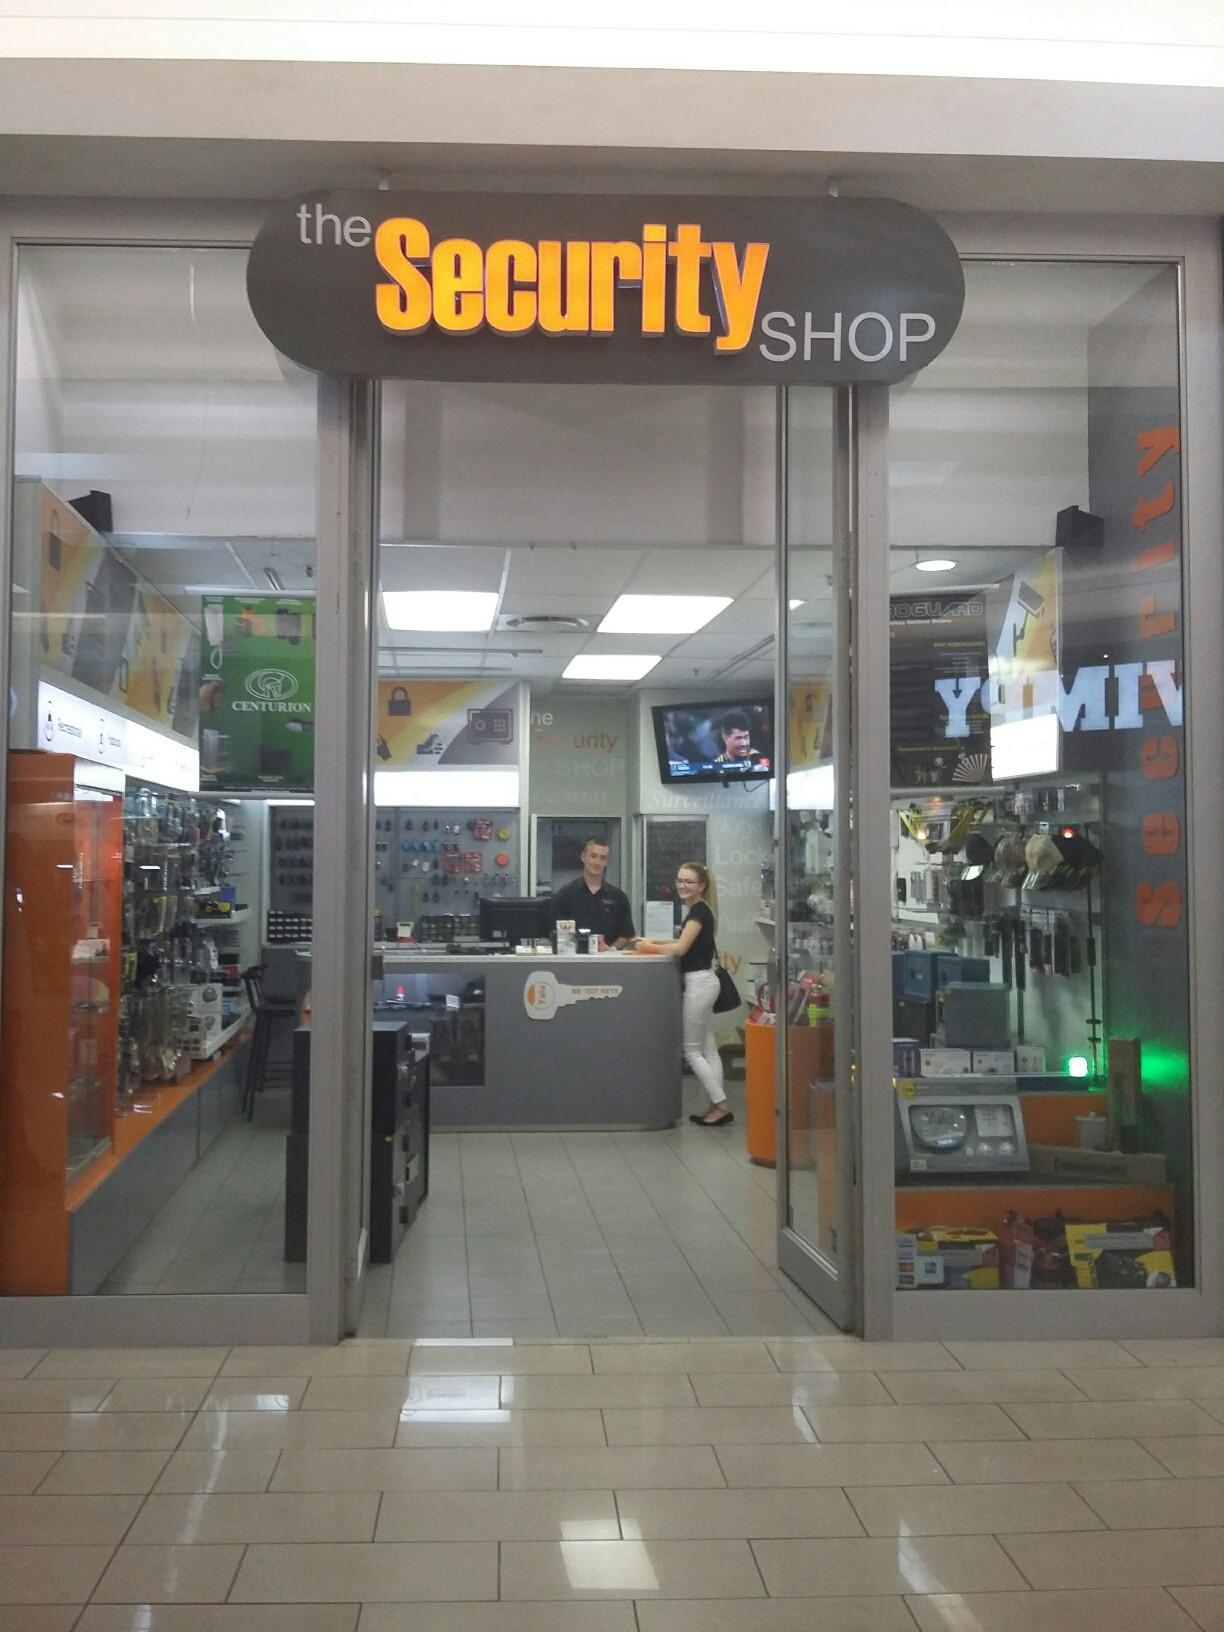 The Security Shop